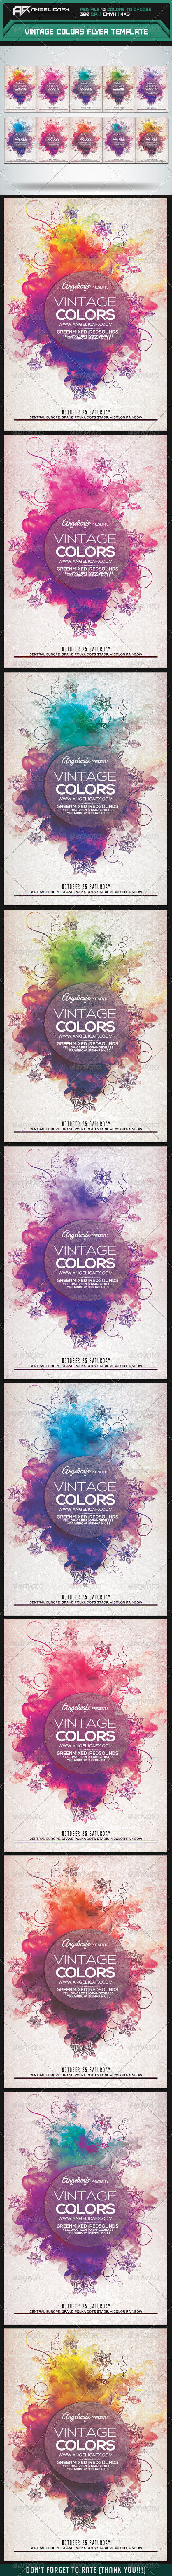 GraphicRiver Vintage Colors Flyer Template 8207713